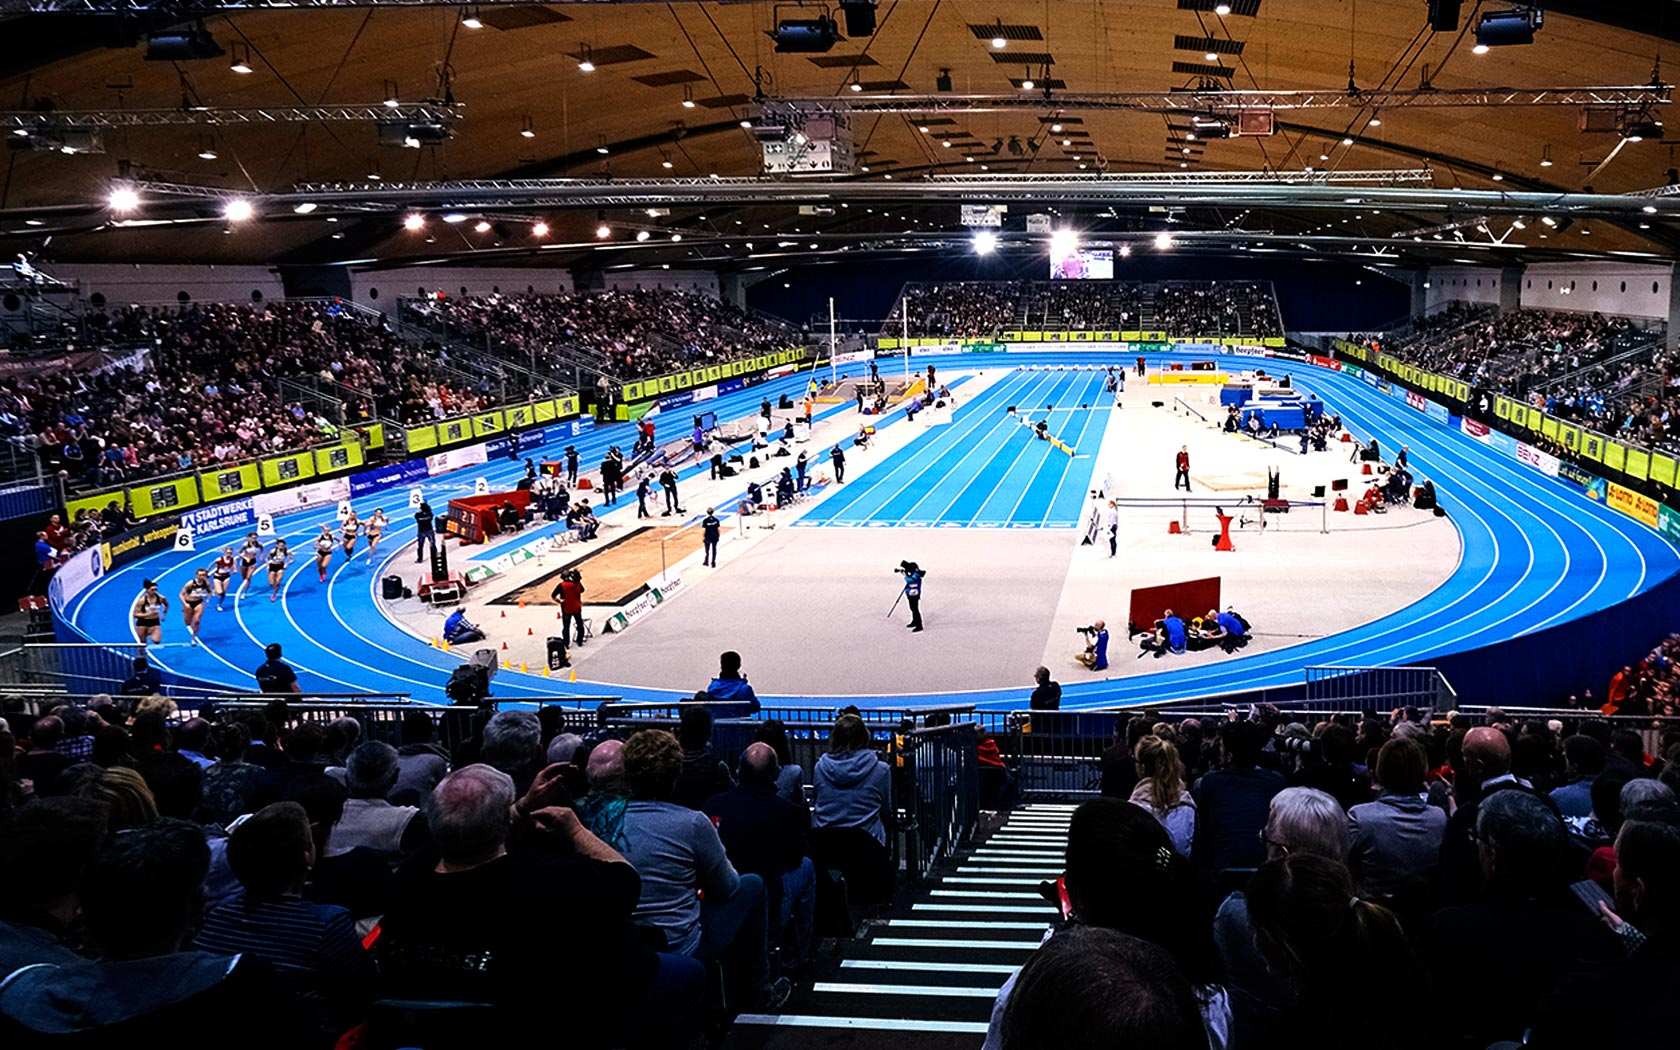 Yare Media to deliver world class athletics events to North American audiences